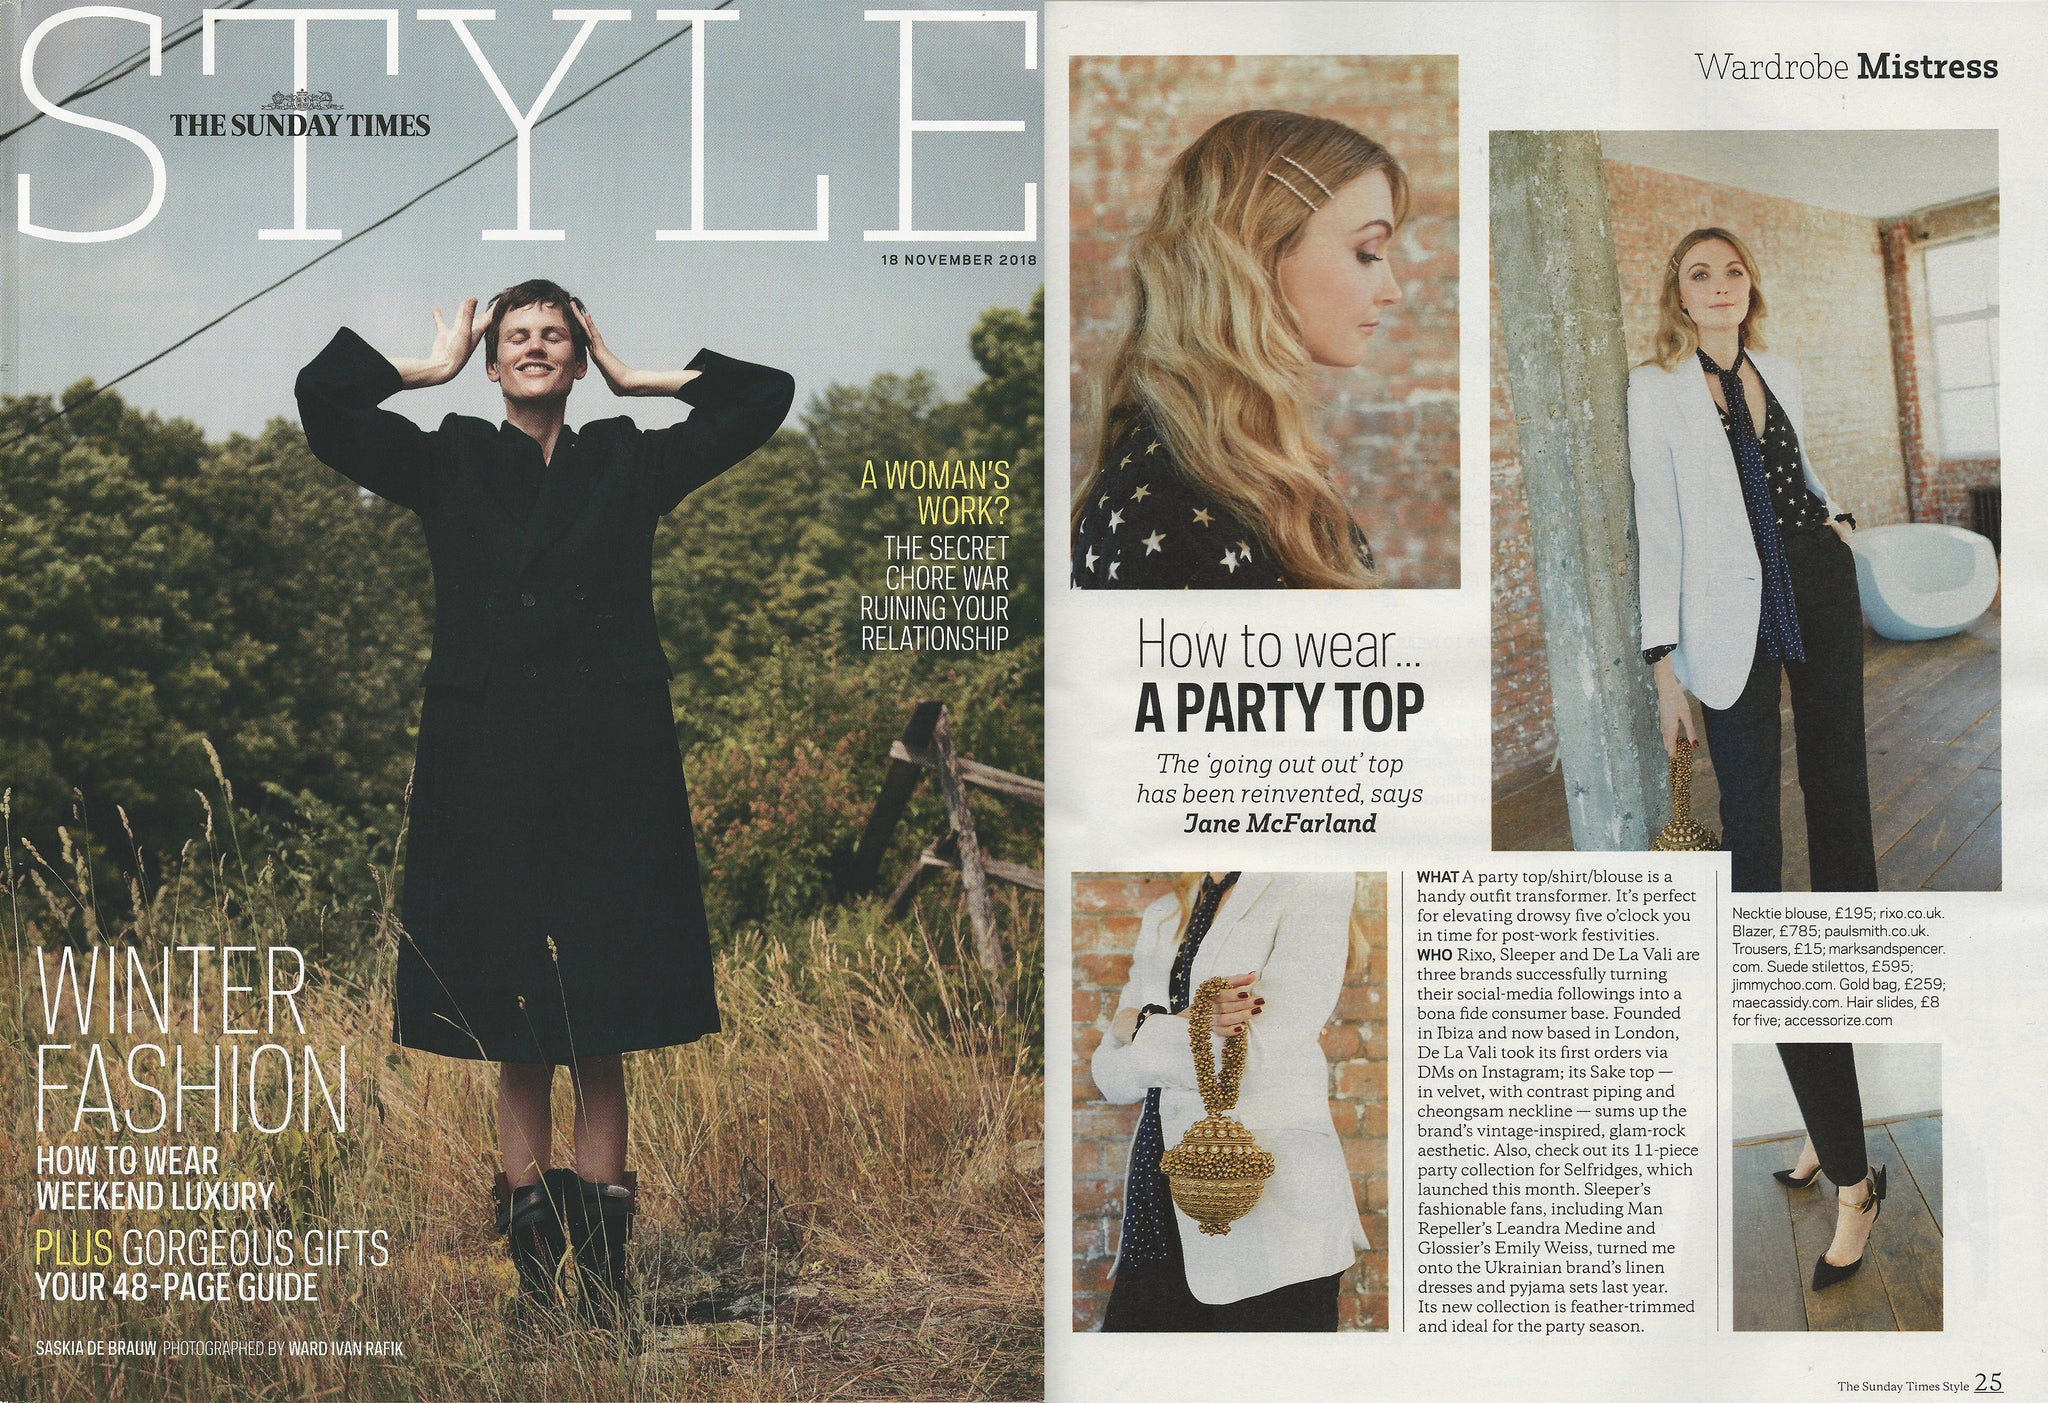 Sunday Times Style's  Mae Cassidy antique gold  Simi Sparkle clutch bag Luxury November Issue Fashion Director Jane Mcfarland styles best party season outfit Wardrobe Mistress antique gold crystal sparkly Simi Sparkle bracelet clutch bag white tailored Paul Smith Blazer polka-dot star printed Rixo necktie blouse Marks and Spenser jeans Accessorize hair slides gifts for her Christmas New Years eve